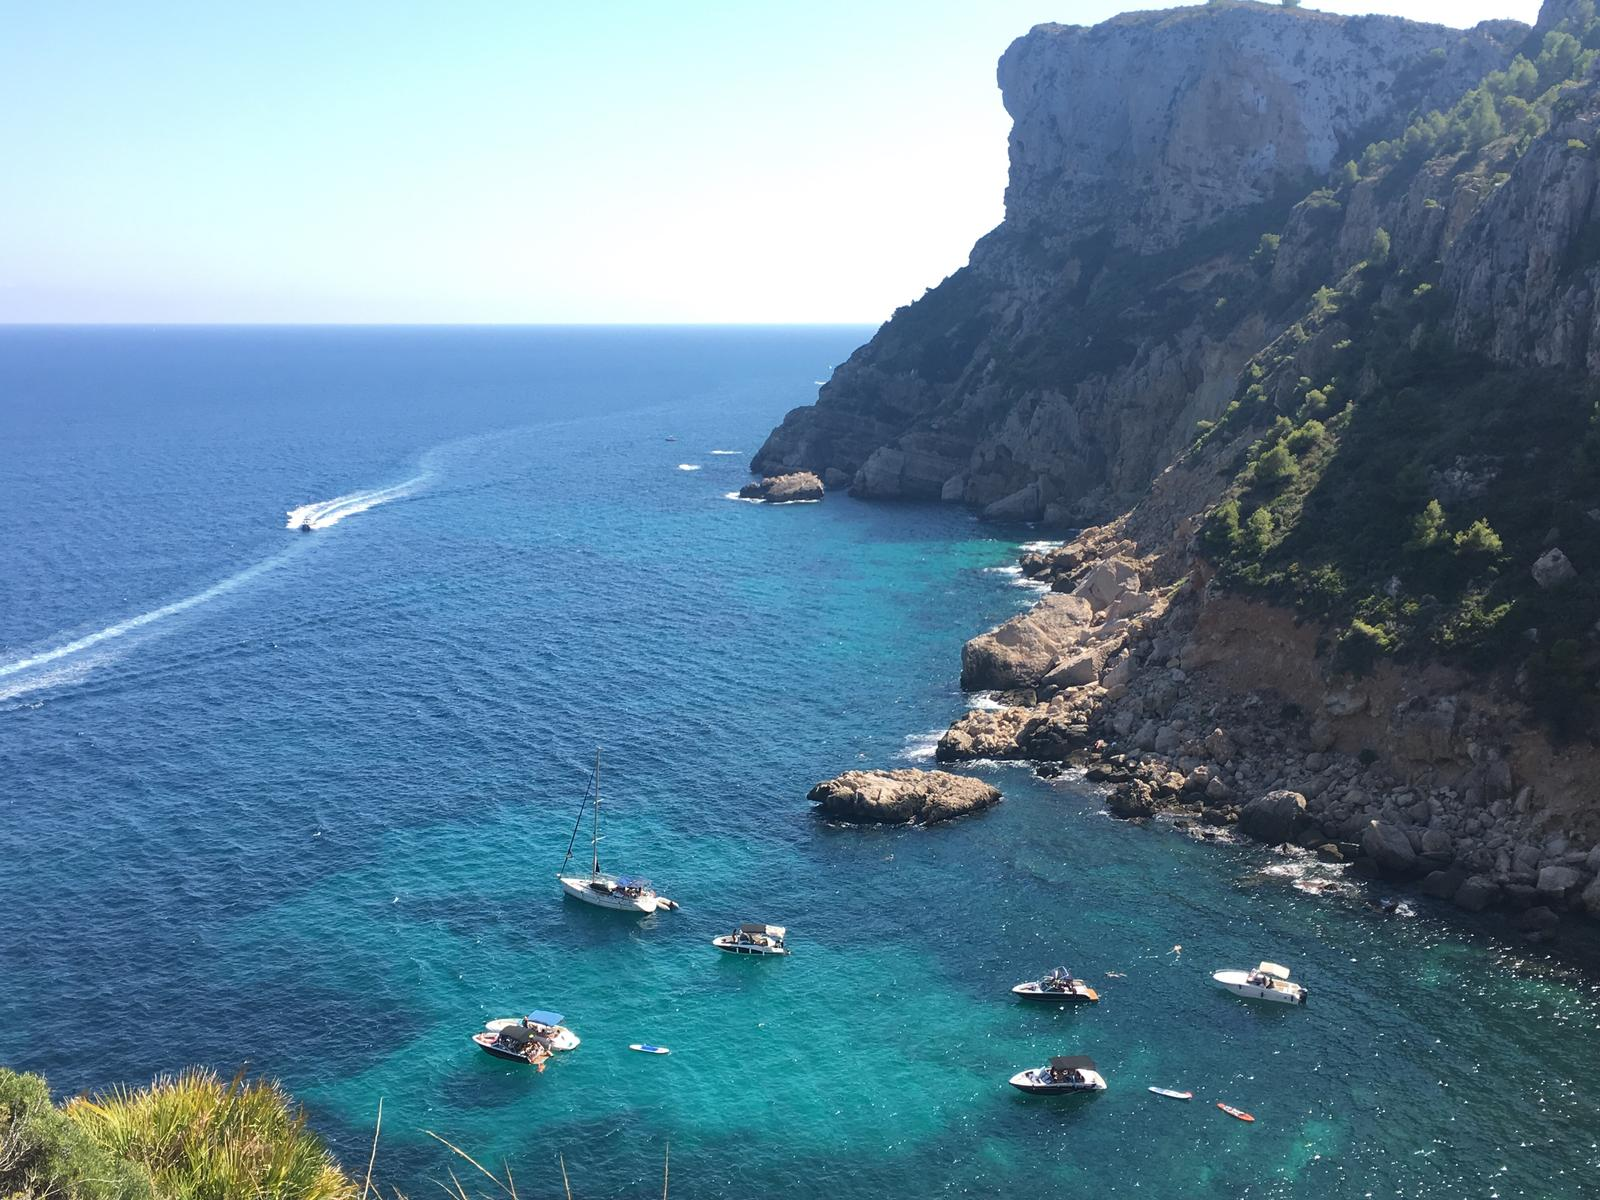 Photo of Cala Moraig - Cala Llebeig